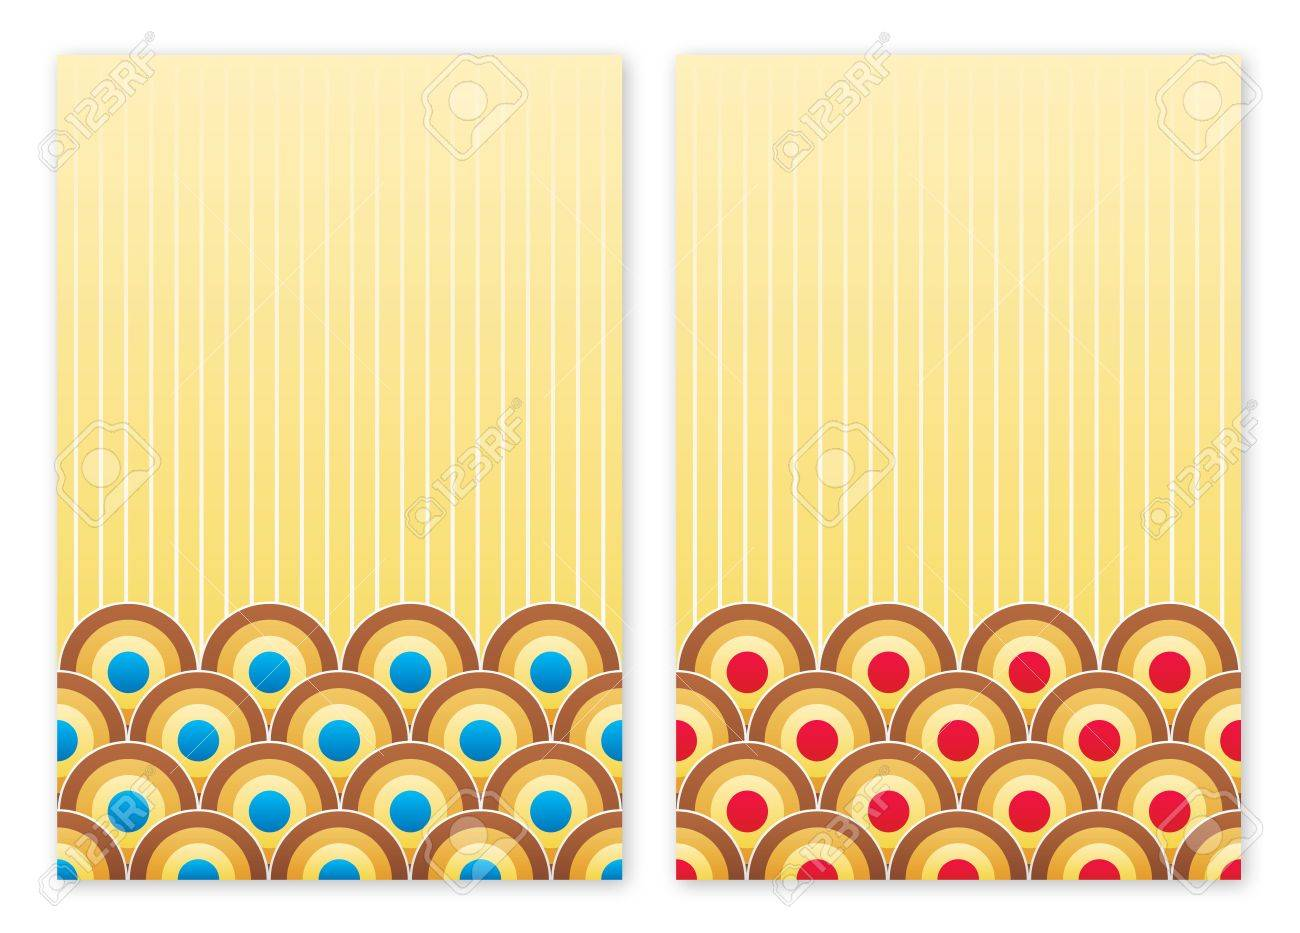 Two retro styled backgrounds with blue and red circles Stock Photo - 5115055